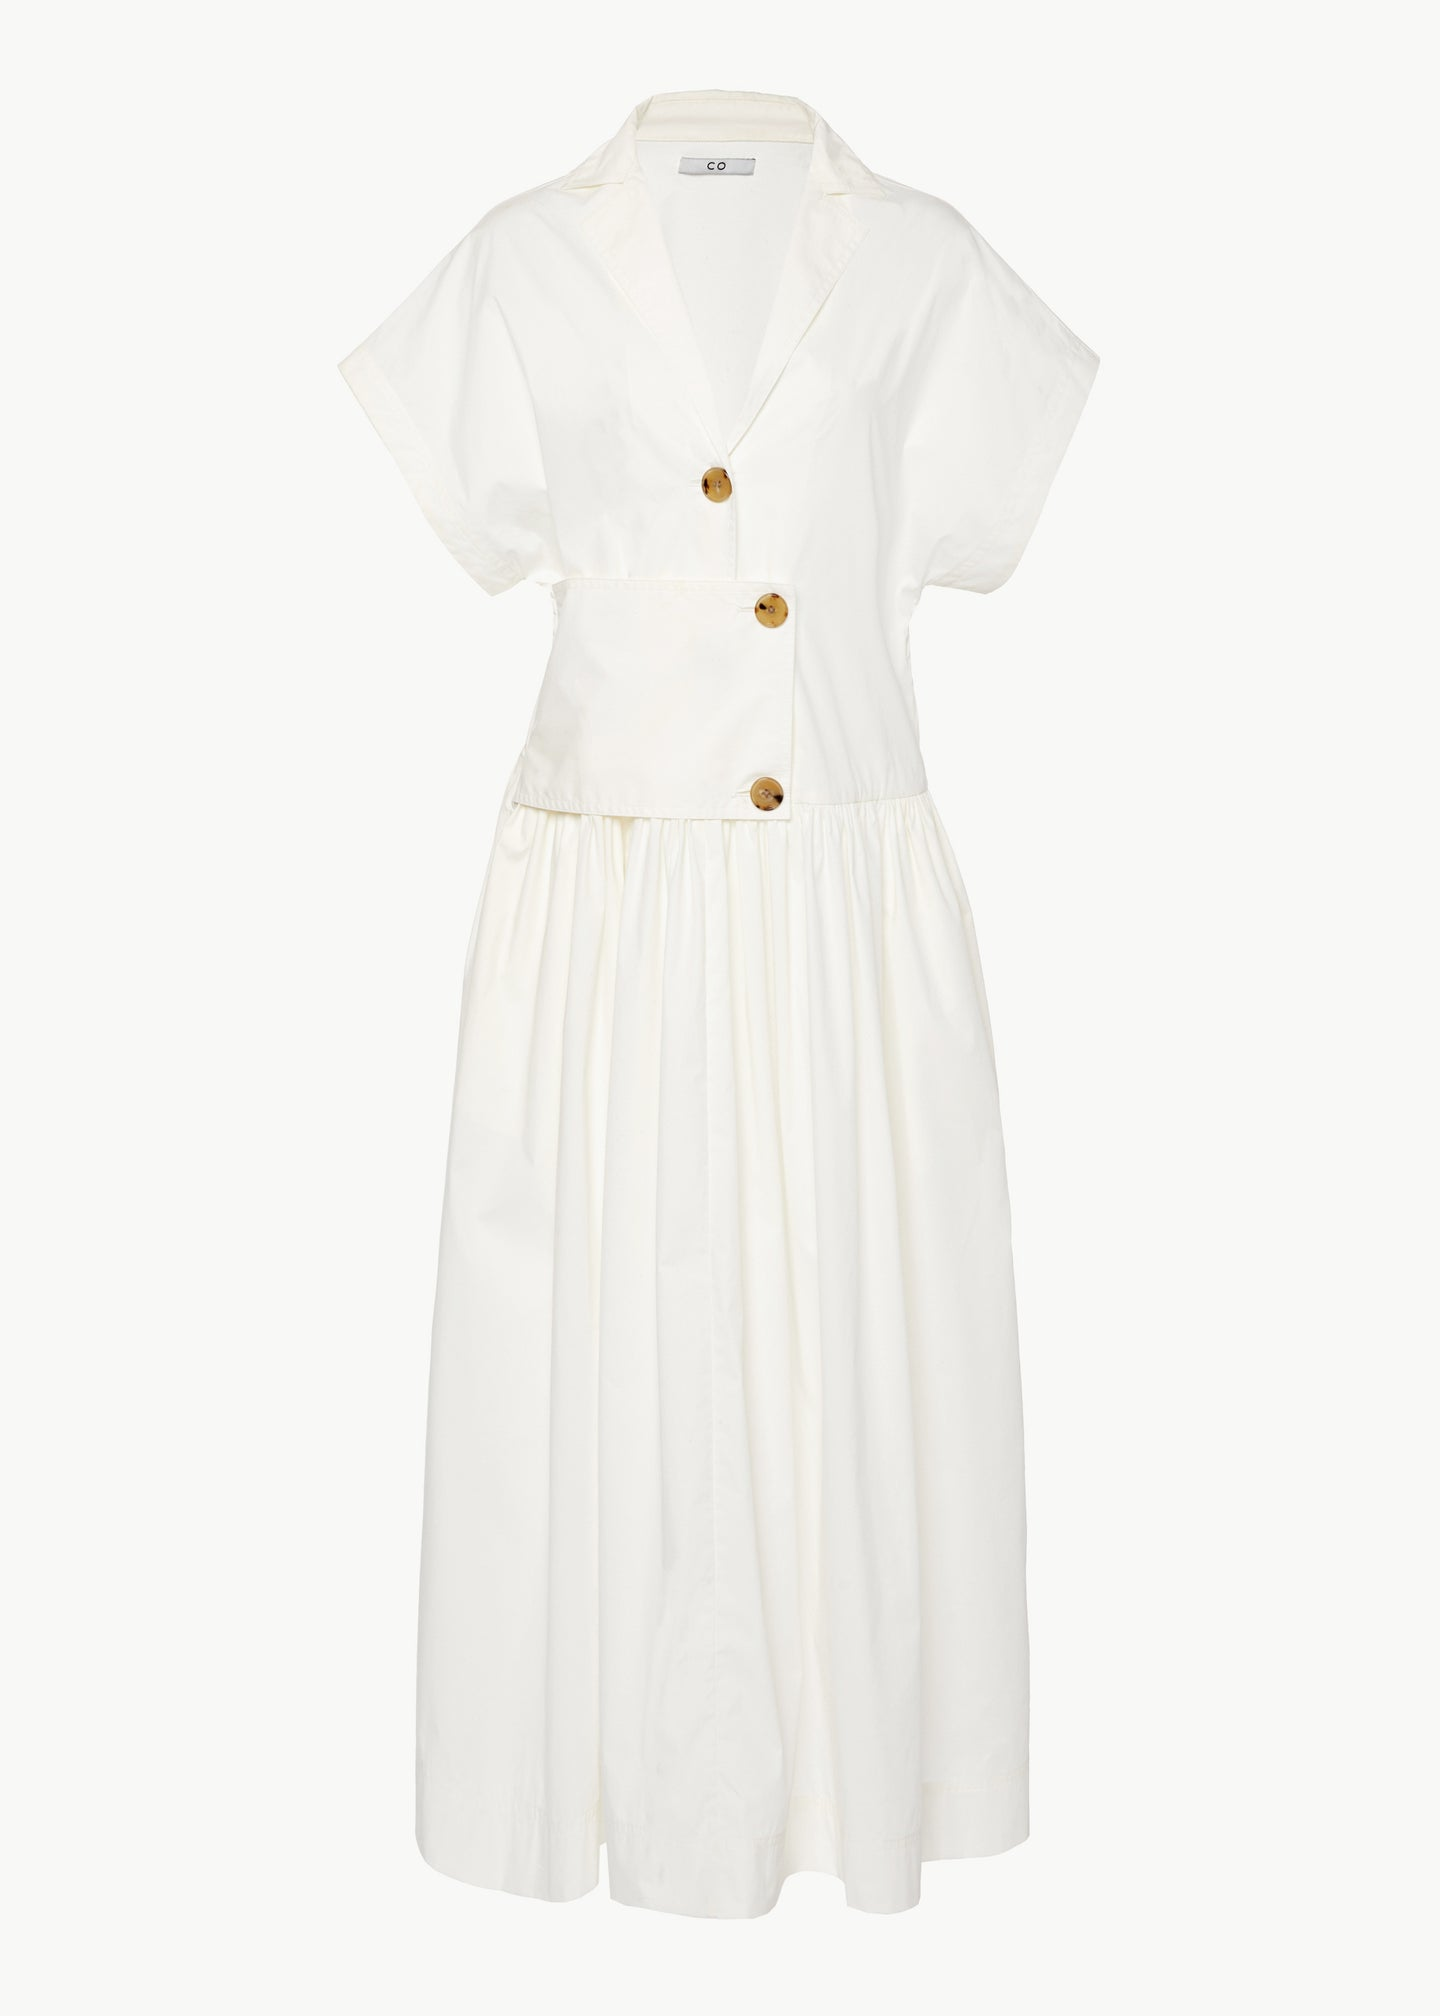 Short Sleeve Dress in Cotton - White - CO